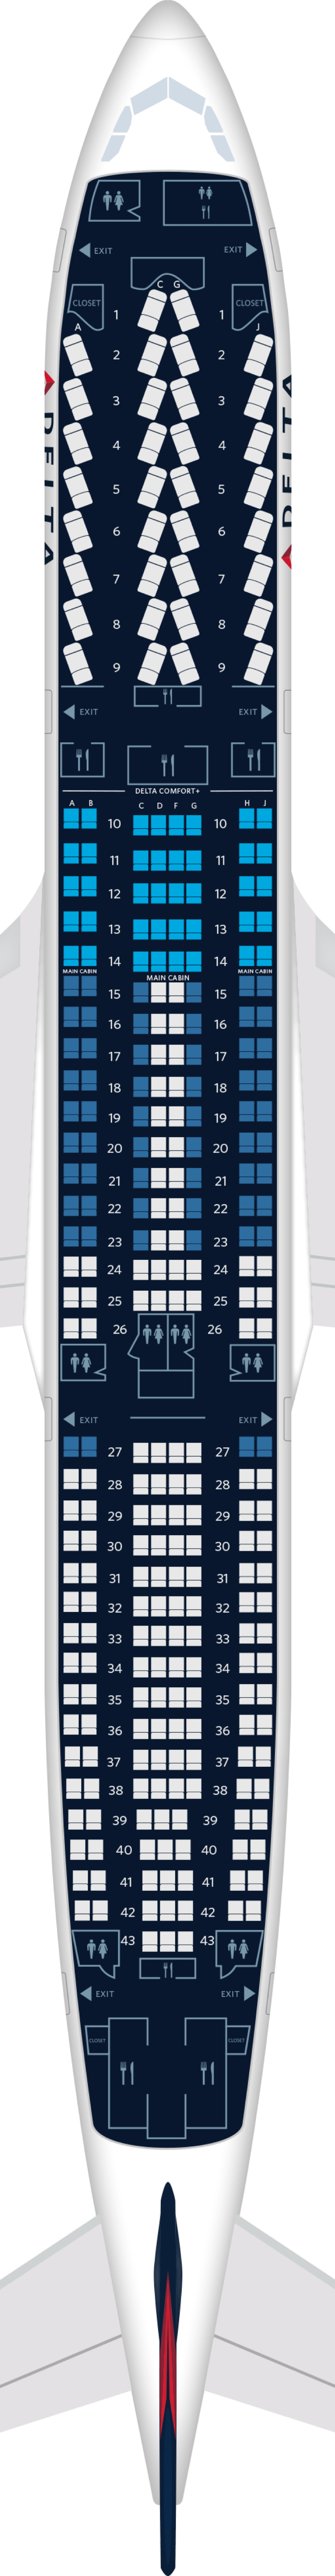 Airbus A330 300 Aircraft Seat Maps Specs Amenities